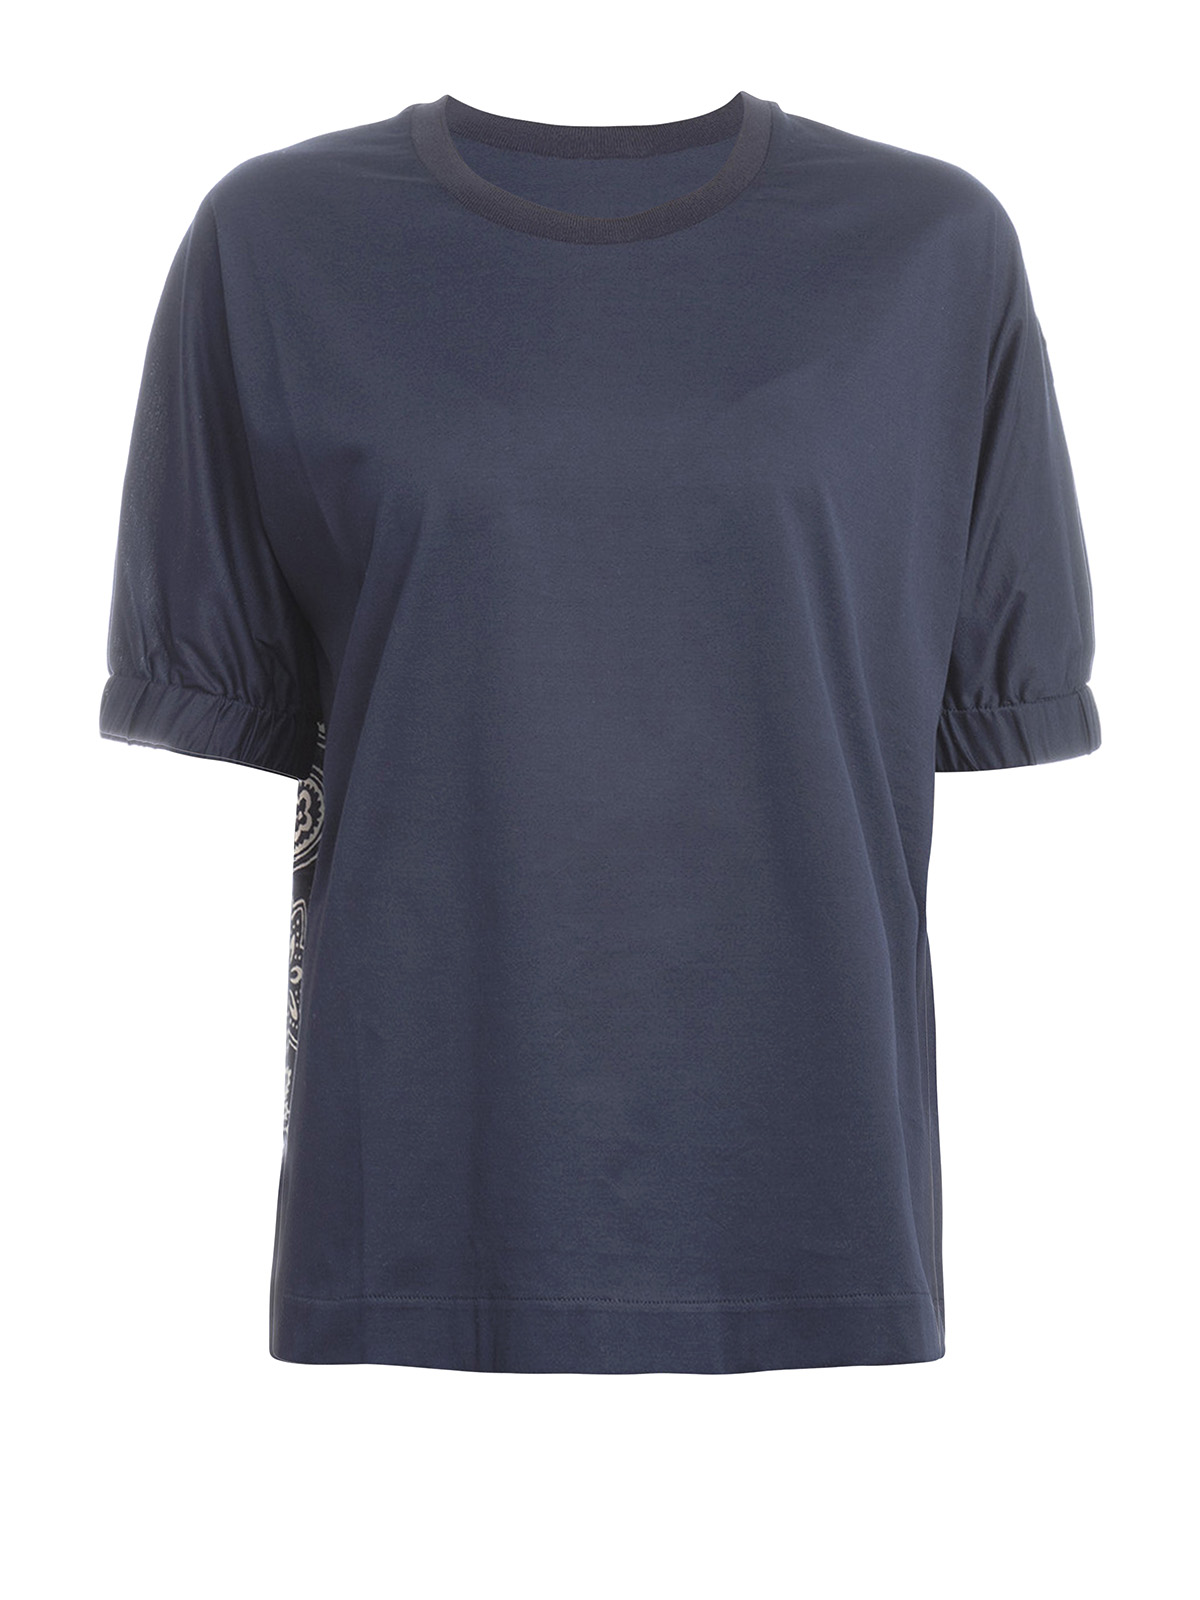 Printed silk and cotton tee by moncler t shirts shop for Cotton silk tee shirts